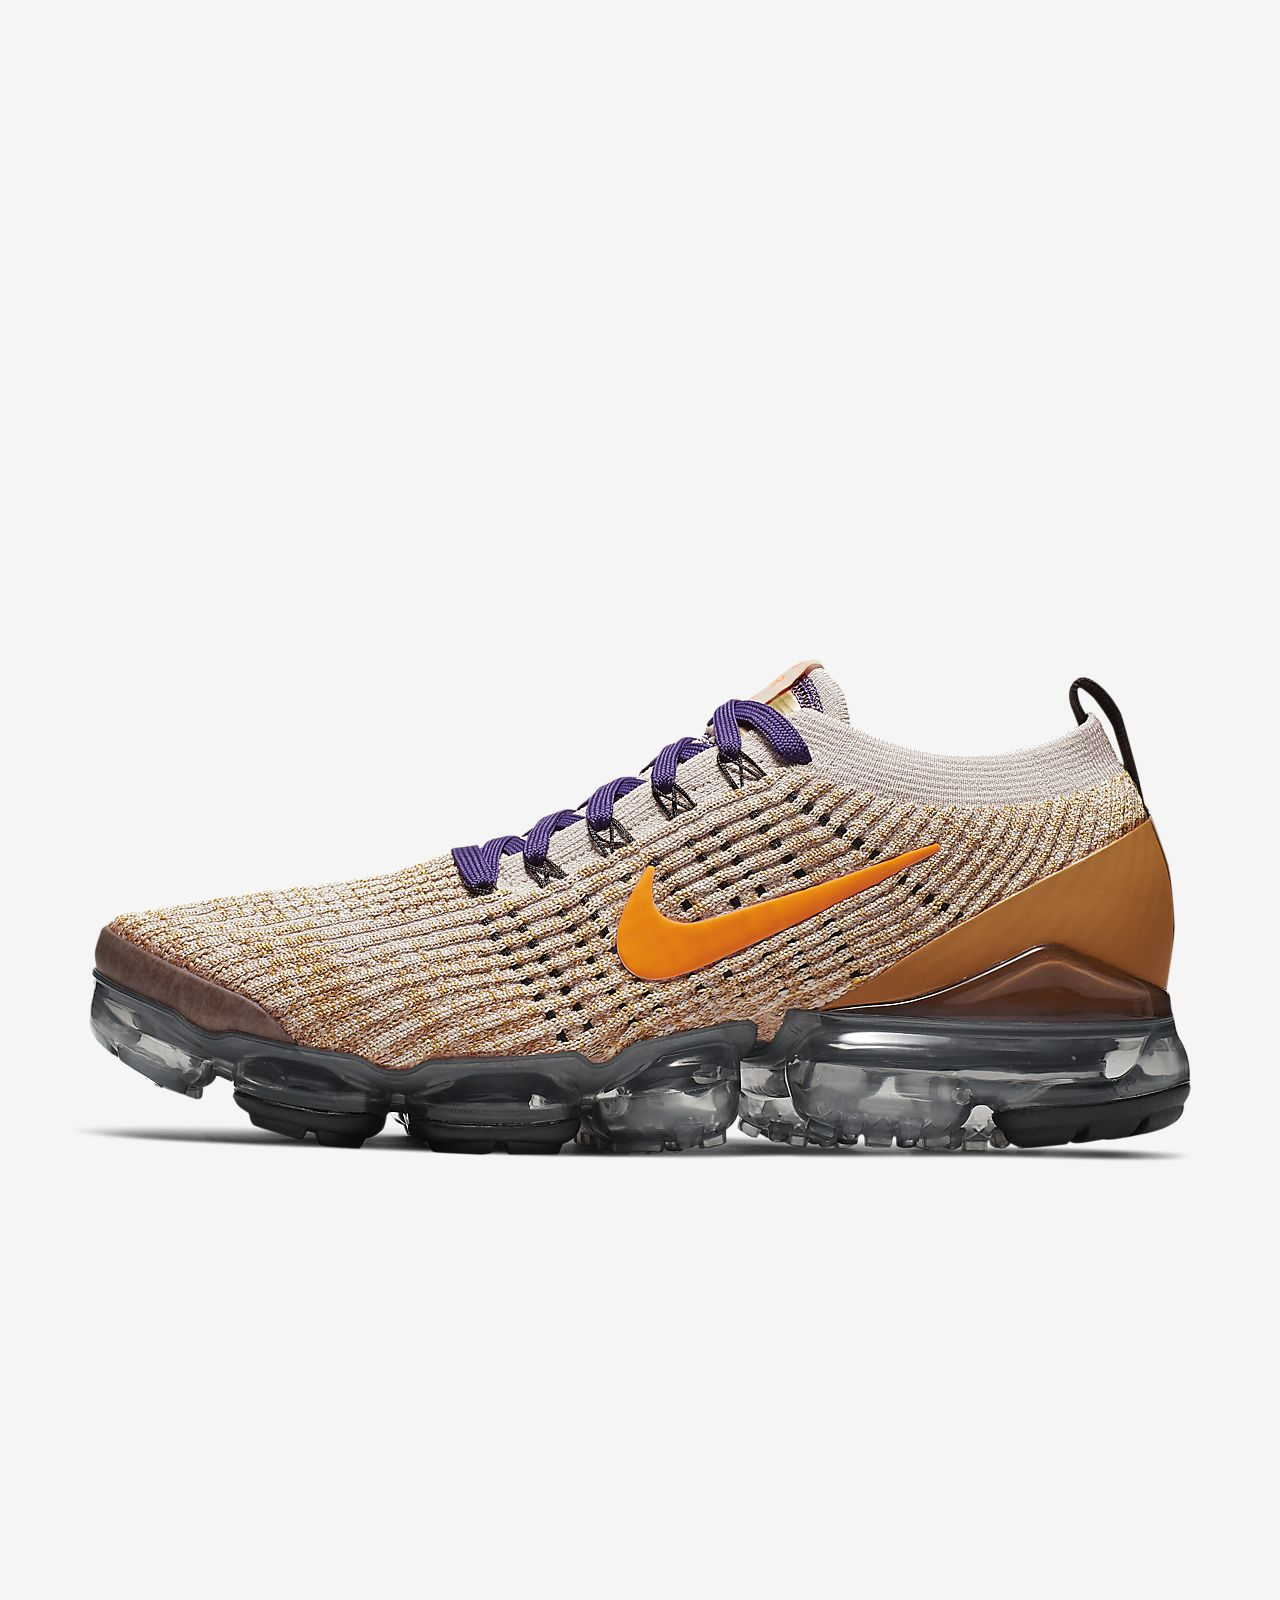 Chaussure Nike Air VaporMax Flyknit 3 pour Homme. FR